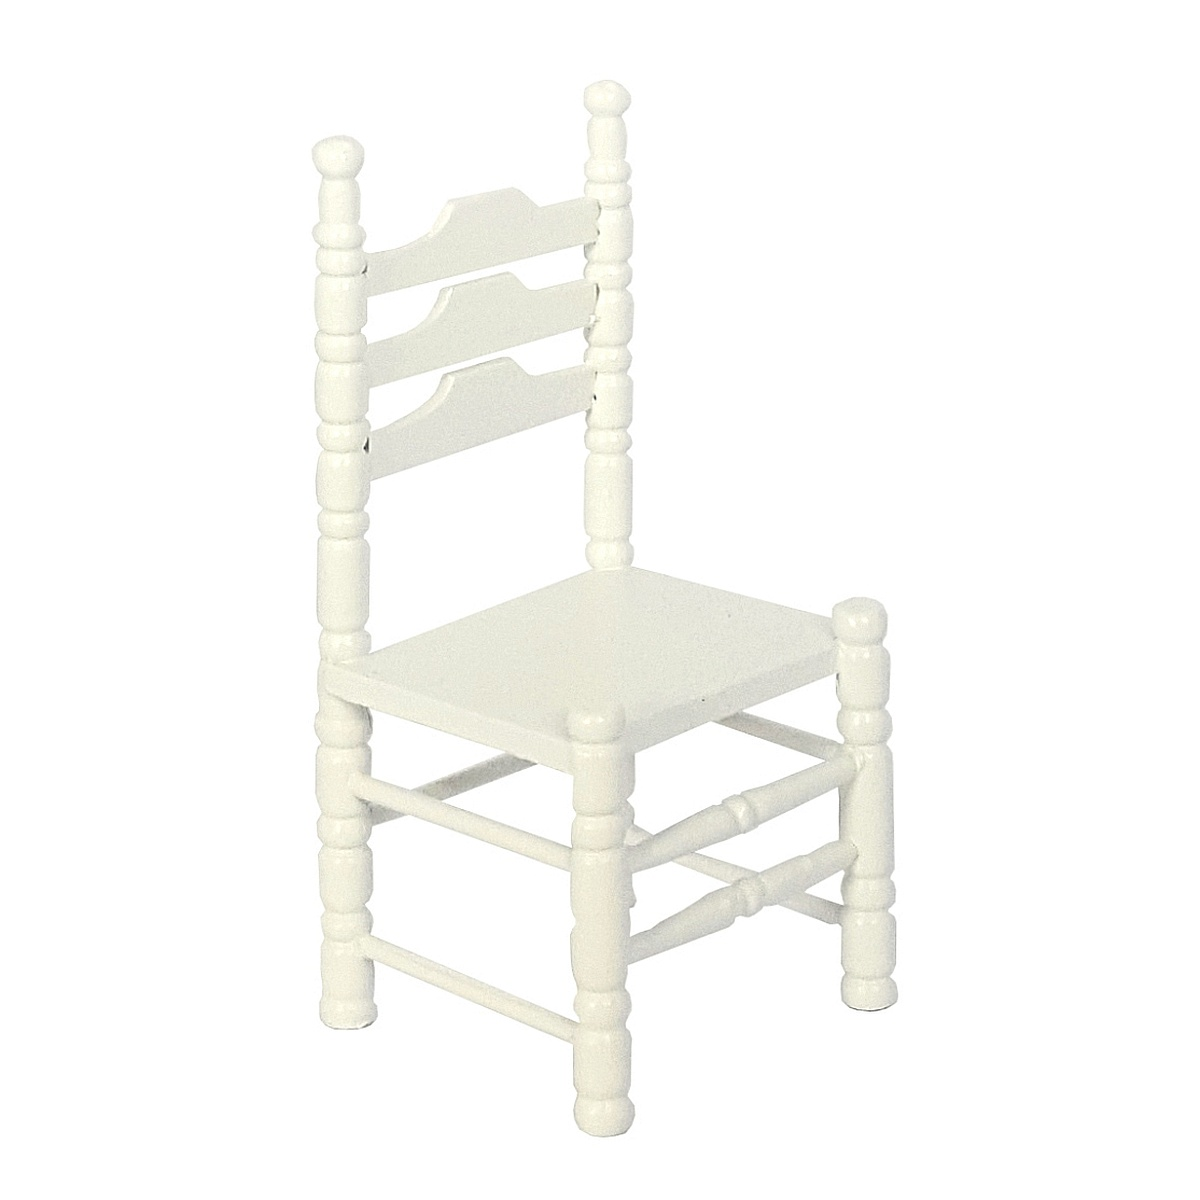 Chairs, white, 2 pcs. 完成品・チェア 2脚セット